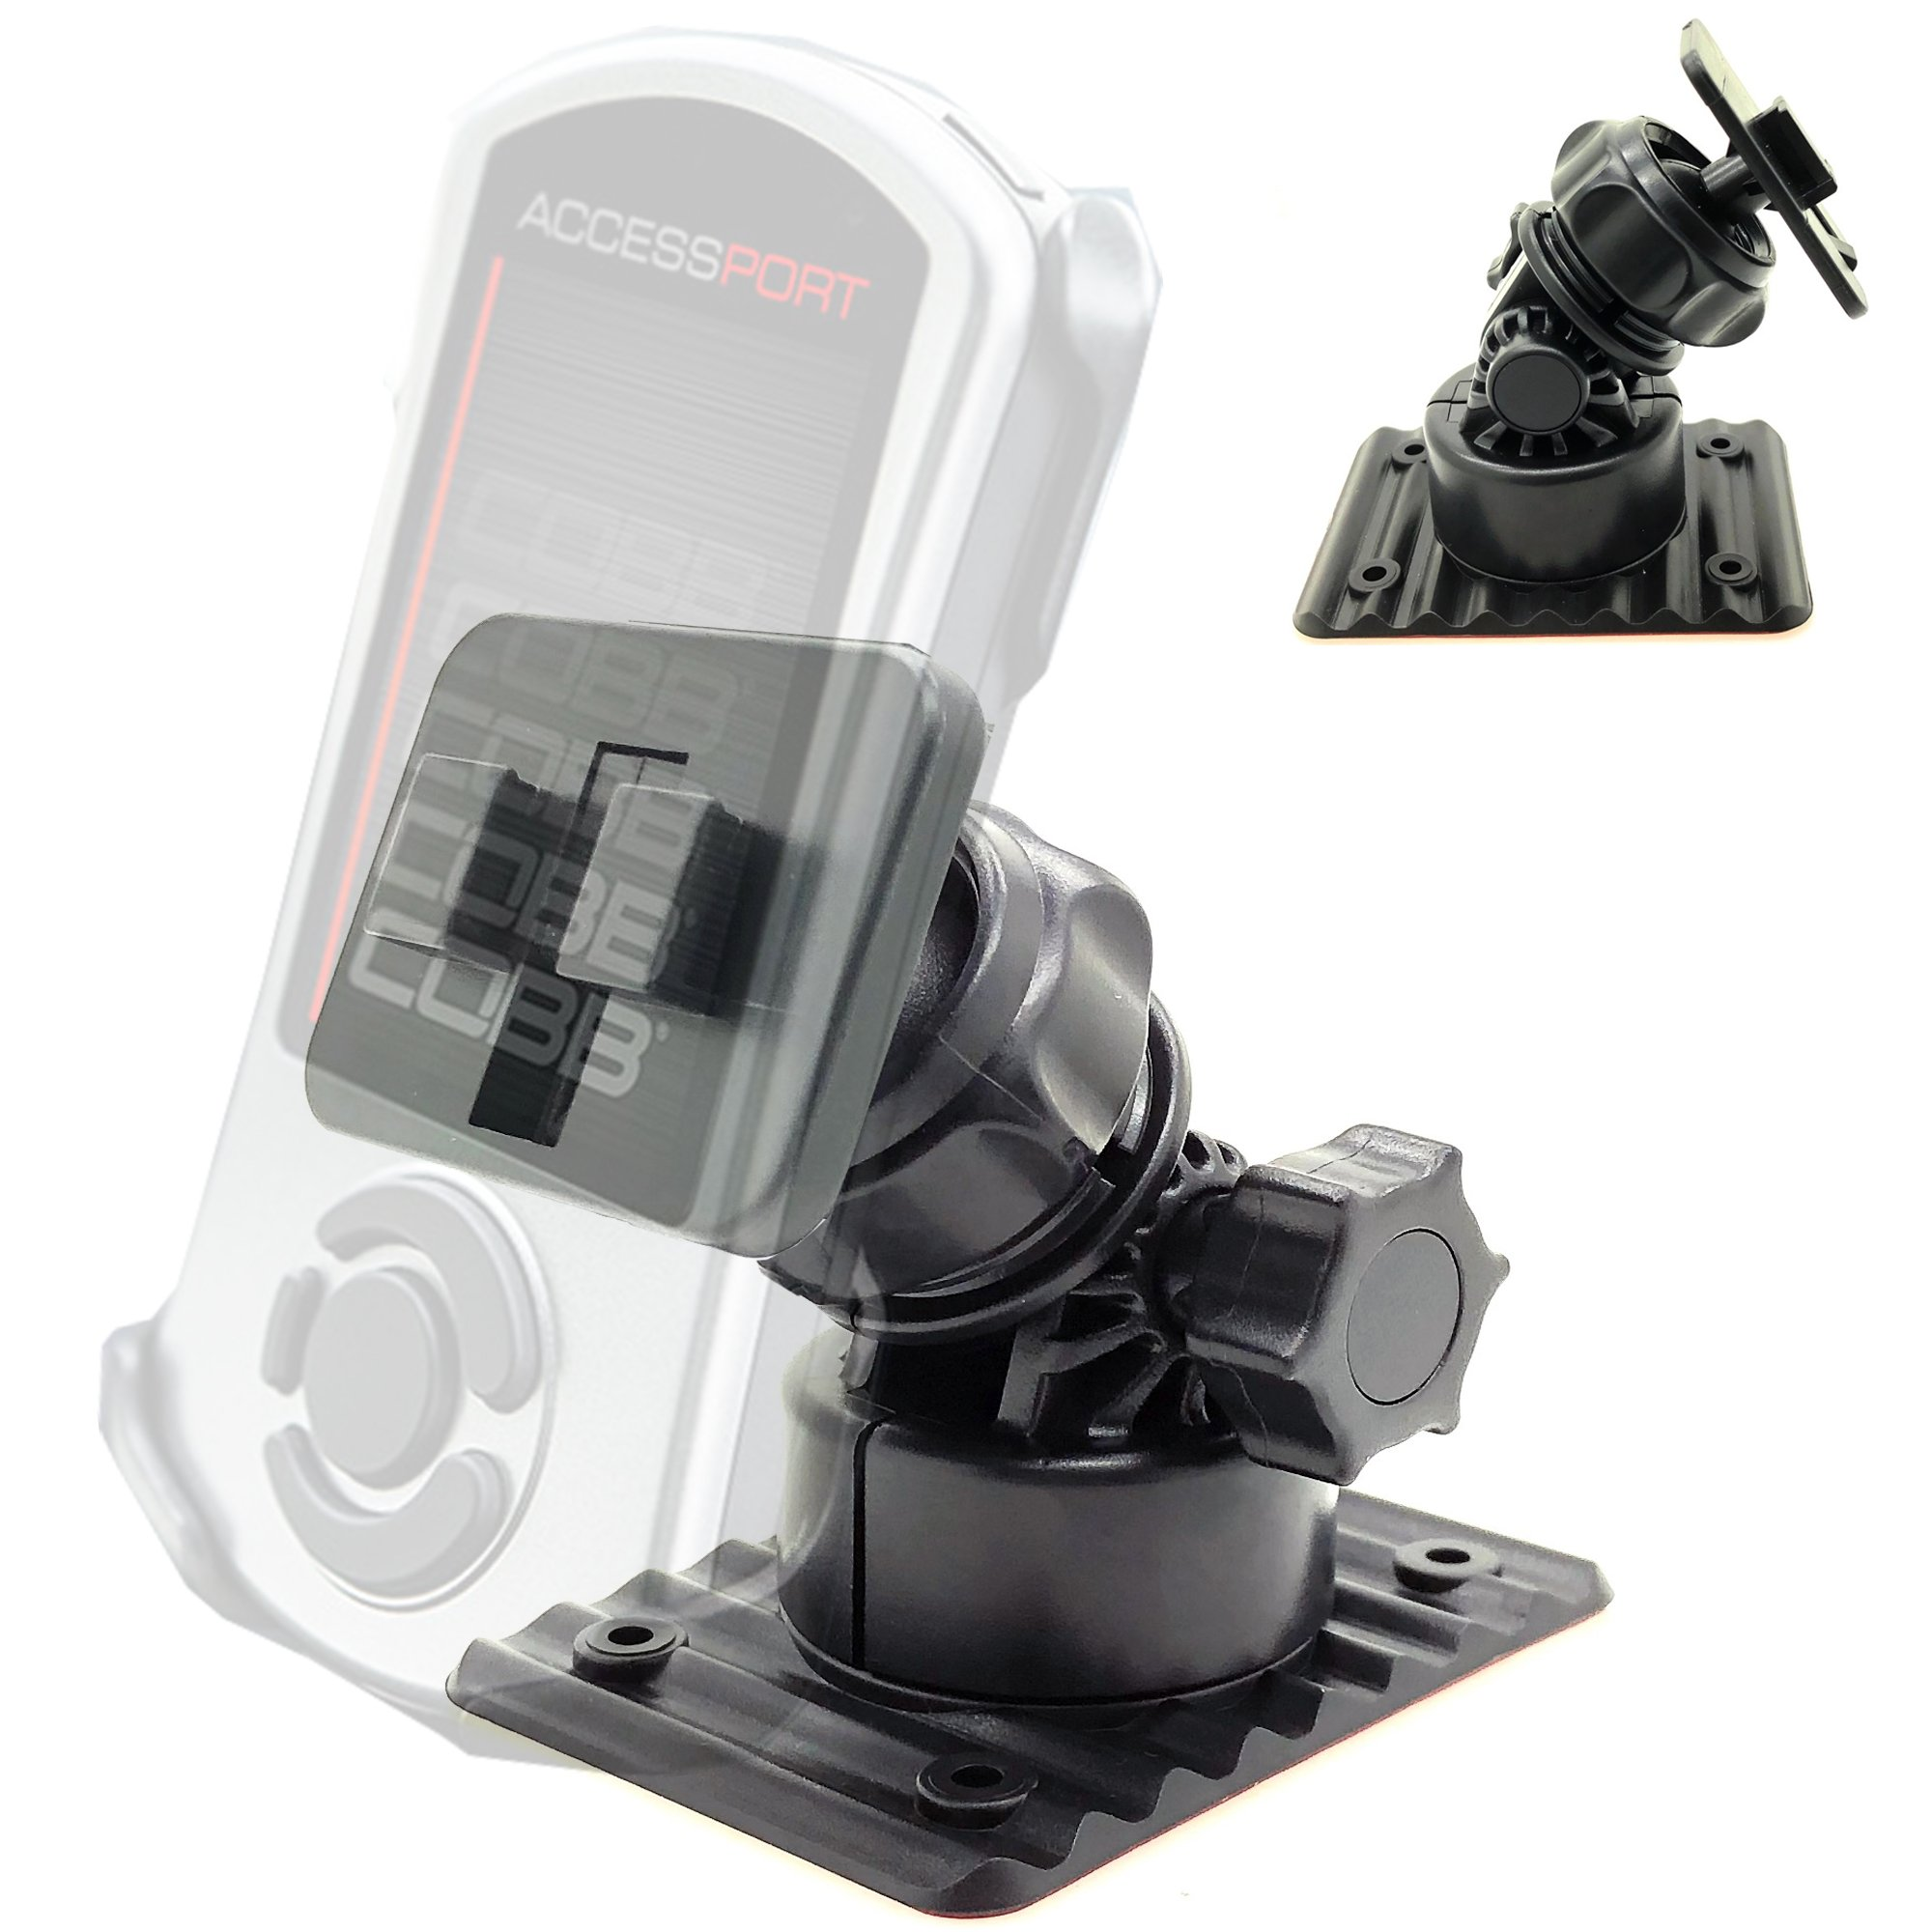 ChargerCity Stick-On Articulate Windshield Suction Mount for COBB Tuning AccessPORT V3 Auto Tuner Programmer Device